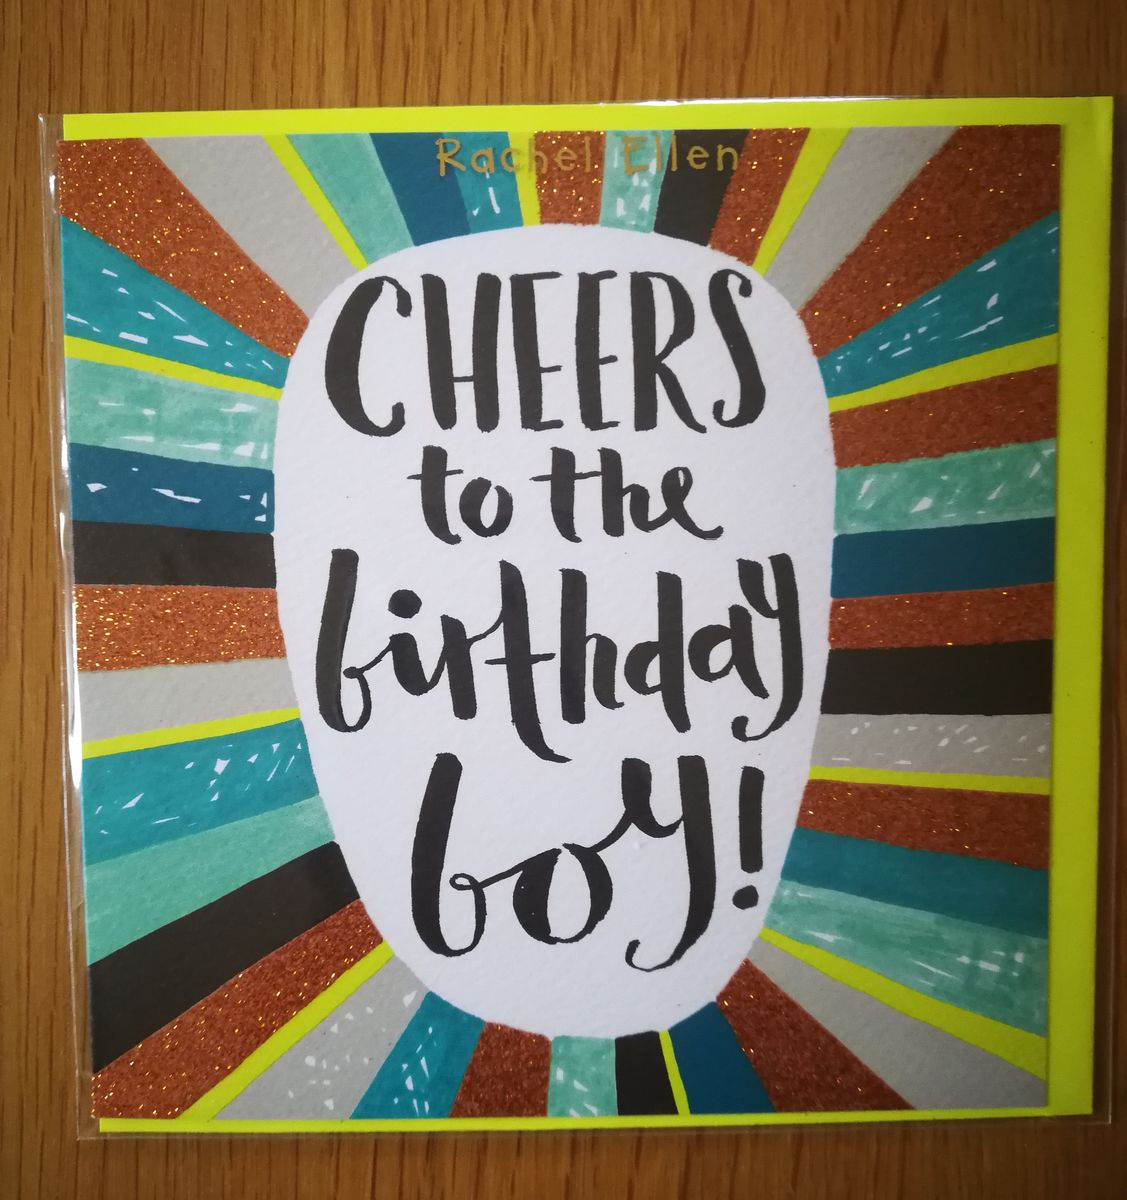 62494c10d Cheers To The Birthday Boy Birthday Card - Karenza Paperie